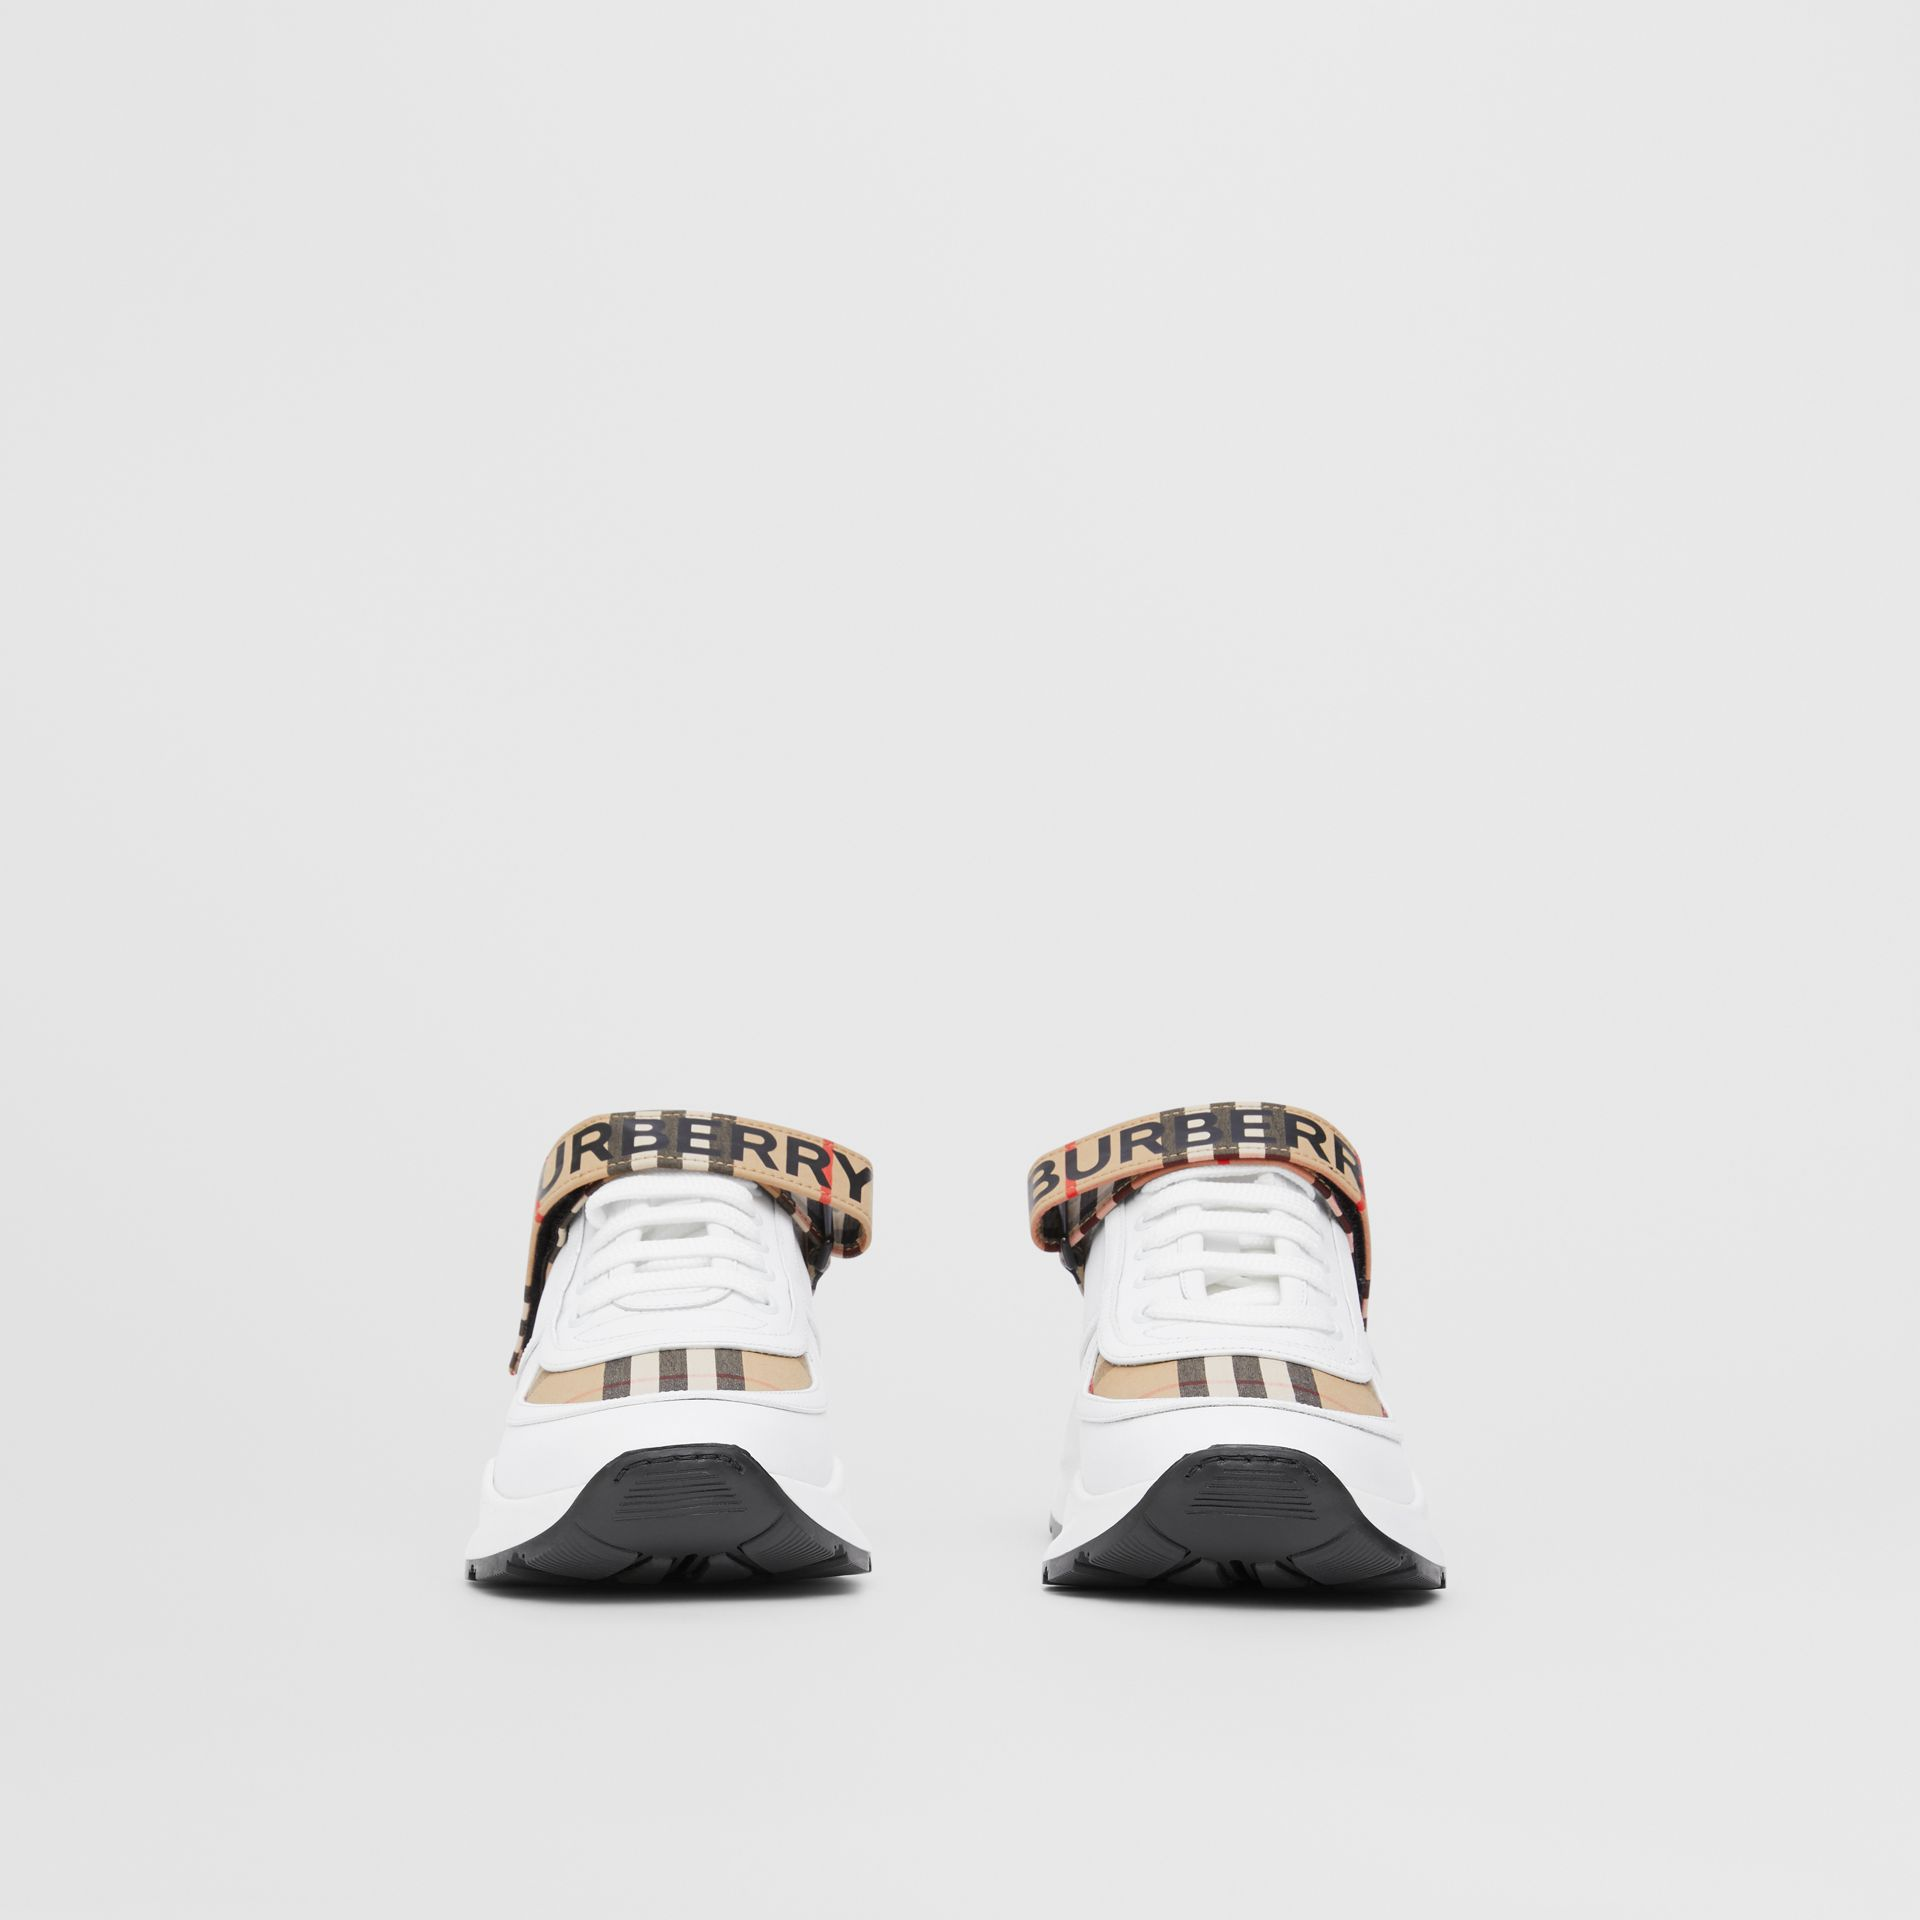 Logo Print Vintage Check and Leather Sneakers in Archive Beige - Women | Burberry - gallery image 3